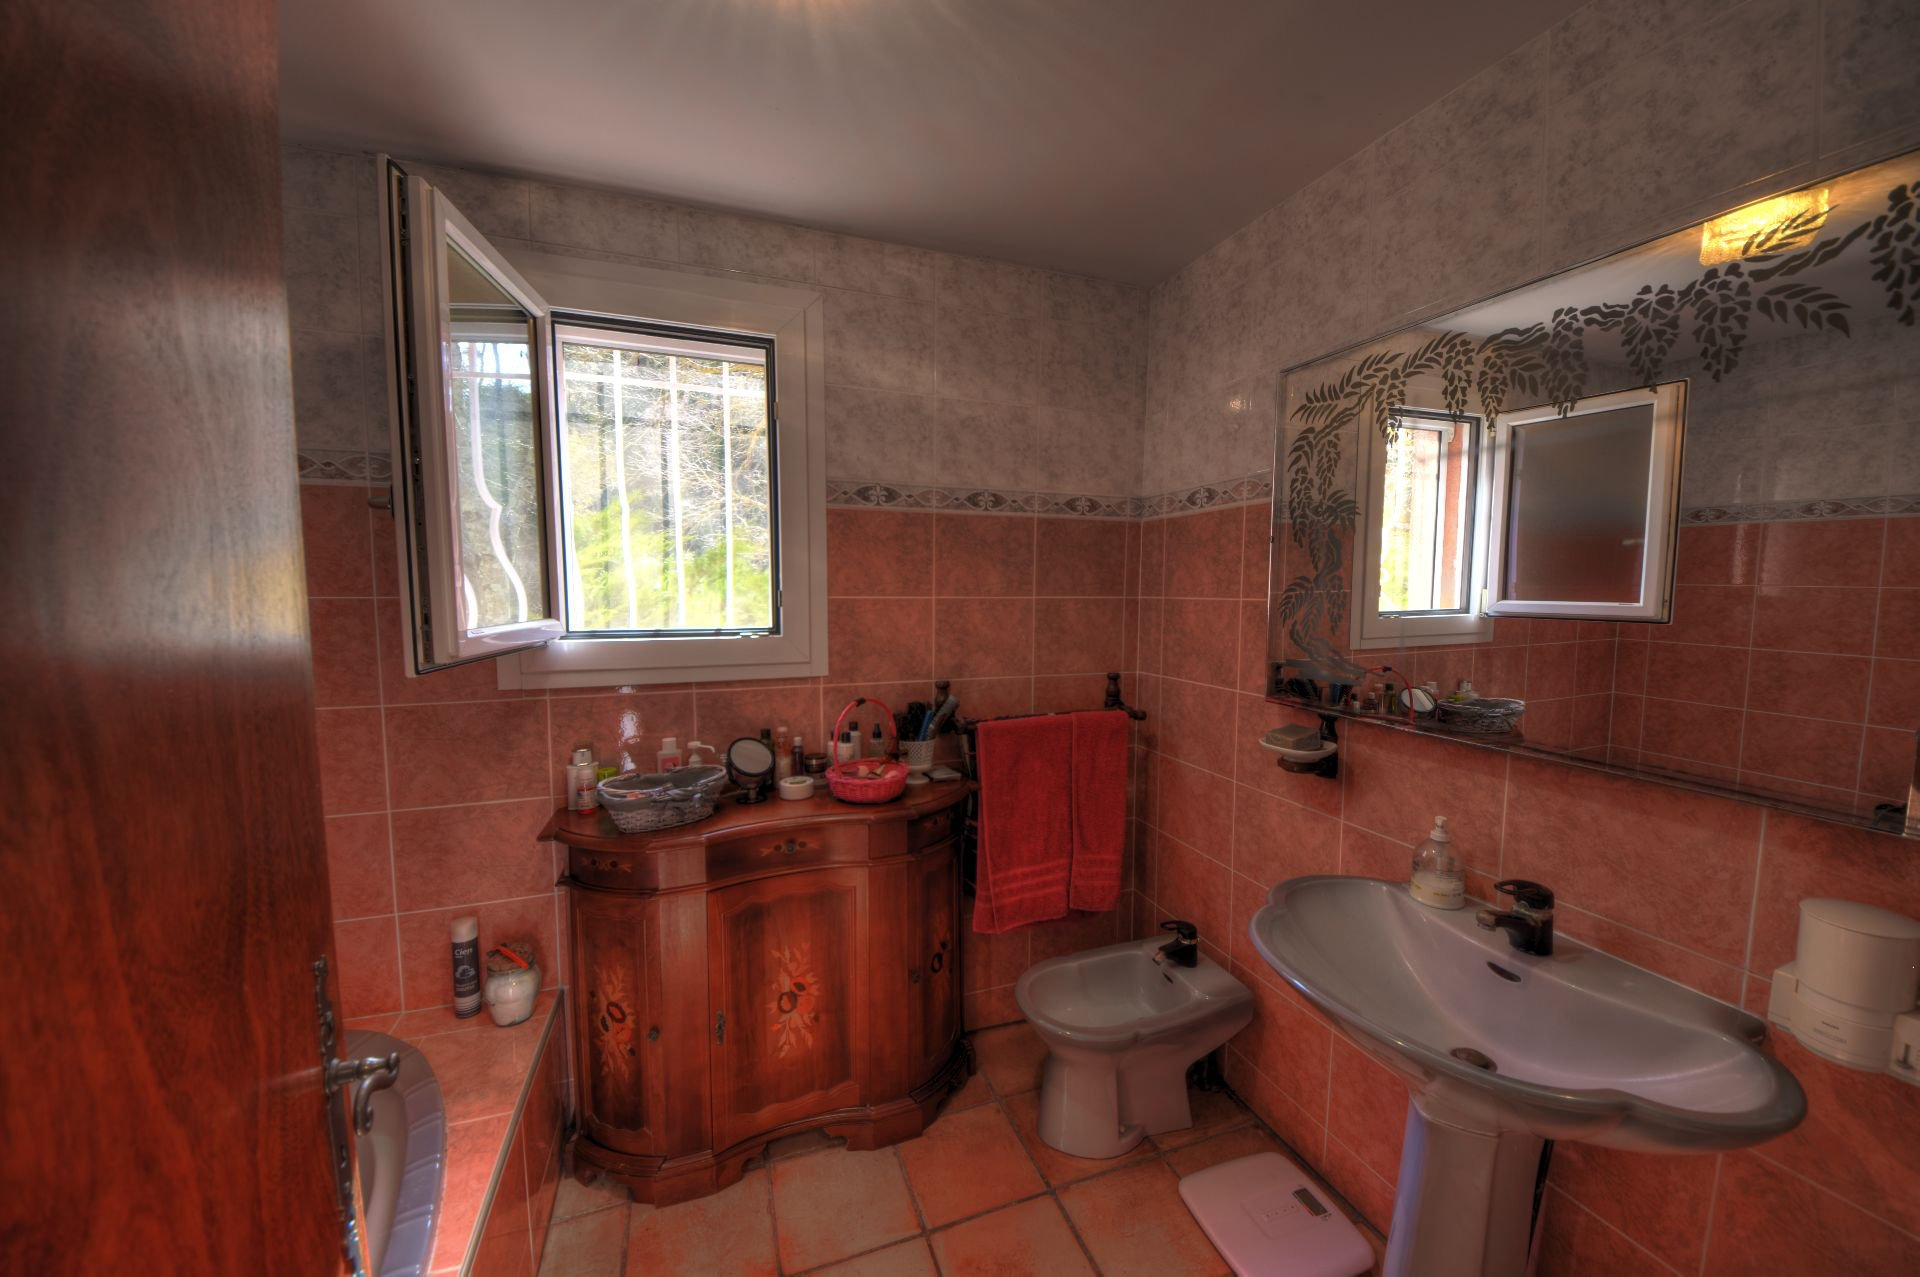 Bathroom of the house of the small property of 4 ha, Barjols, Var, Provence